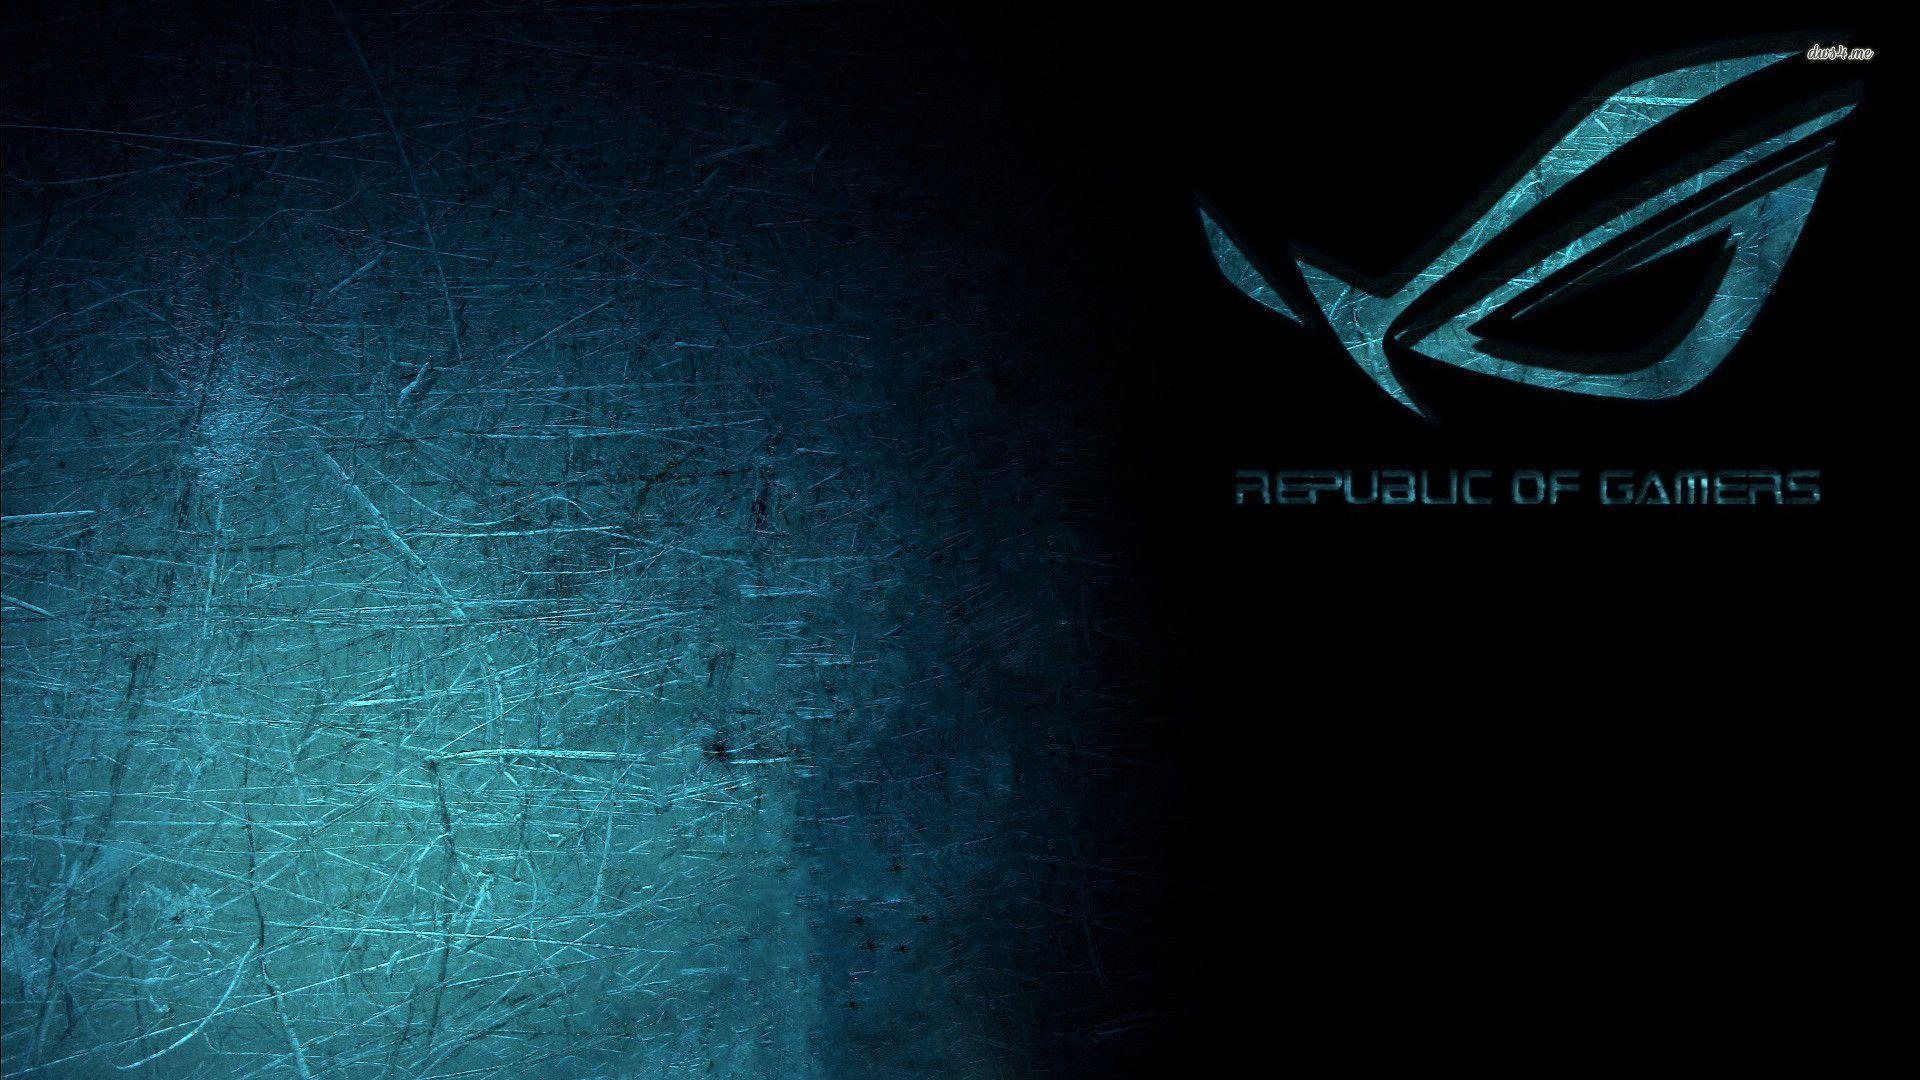 Republic Gamers Wallpapers Wallpaper Cave